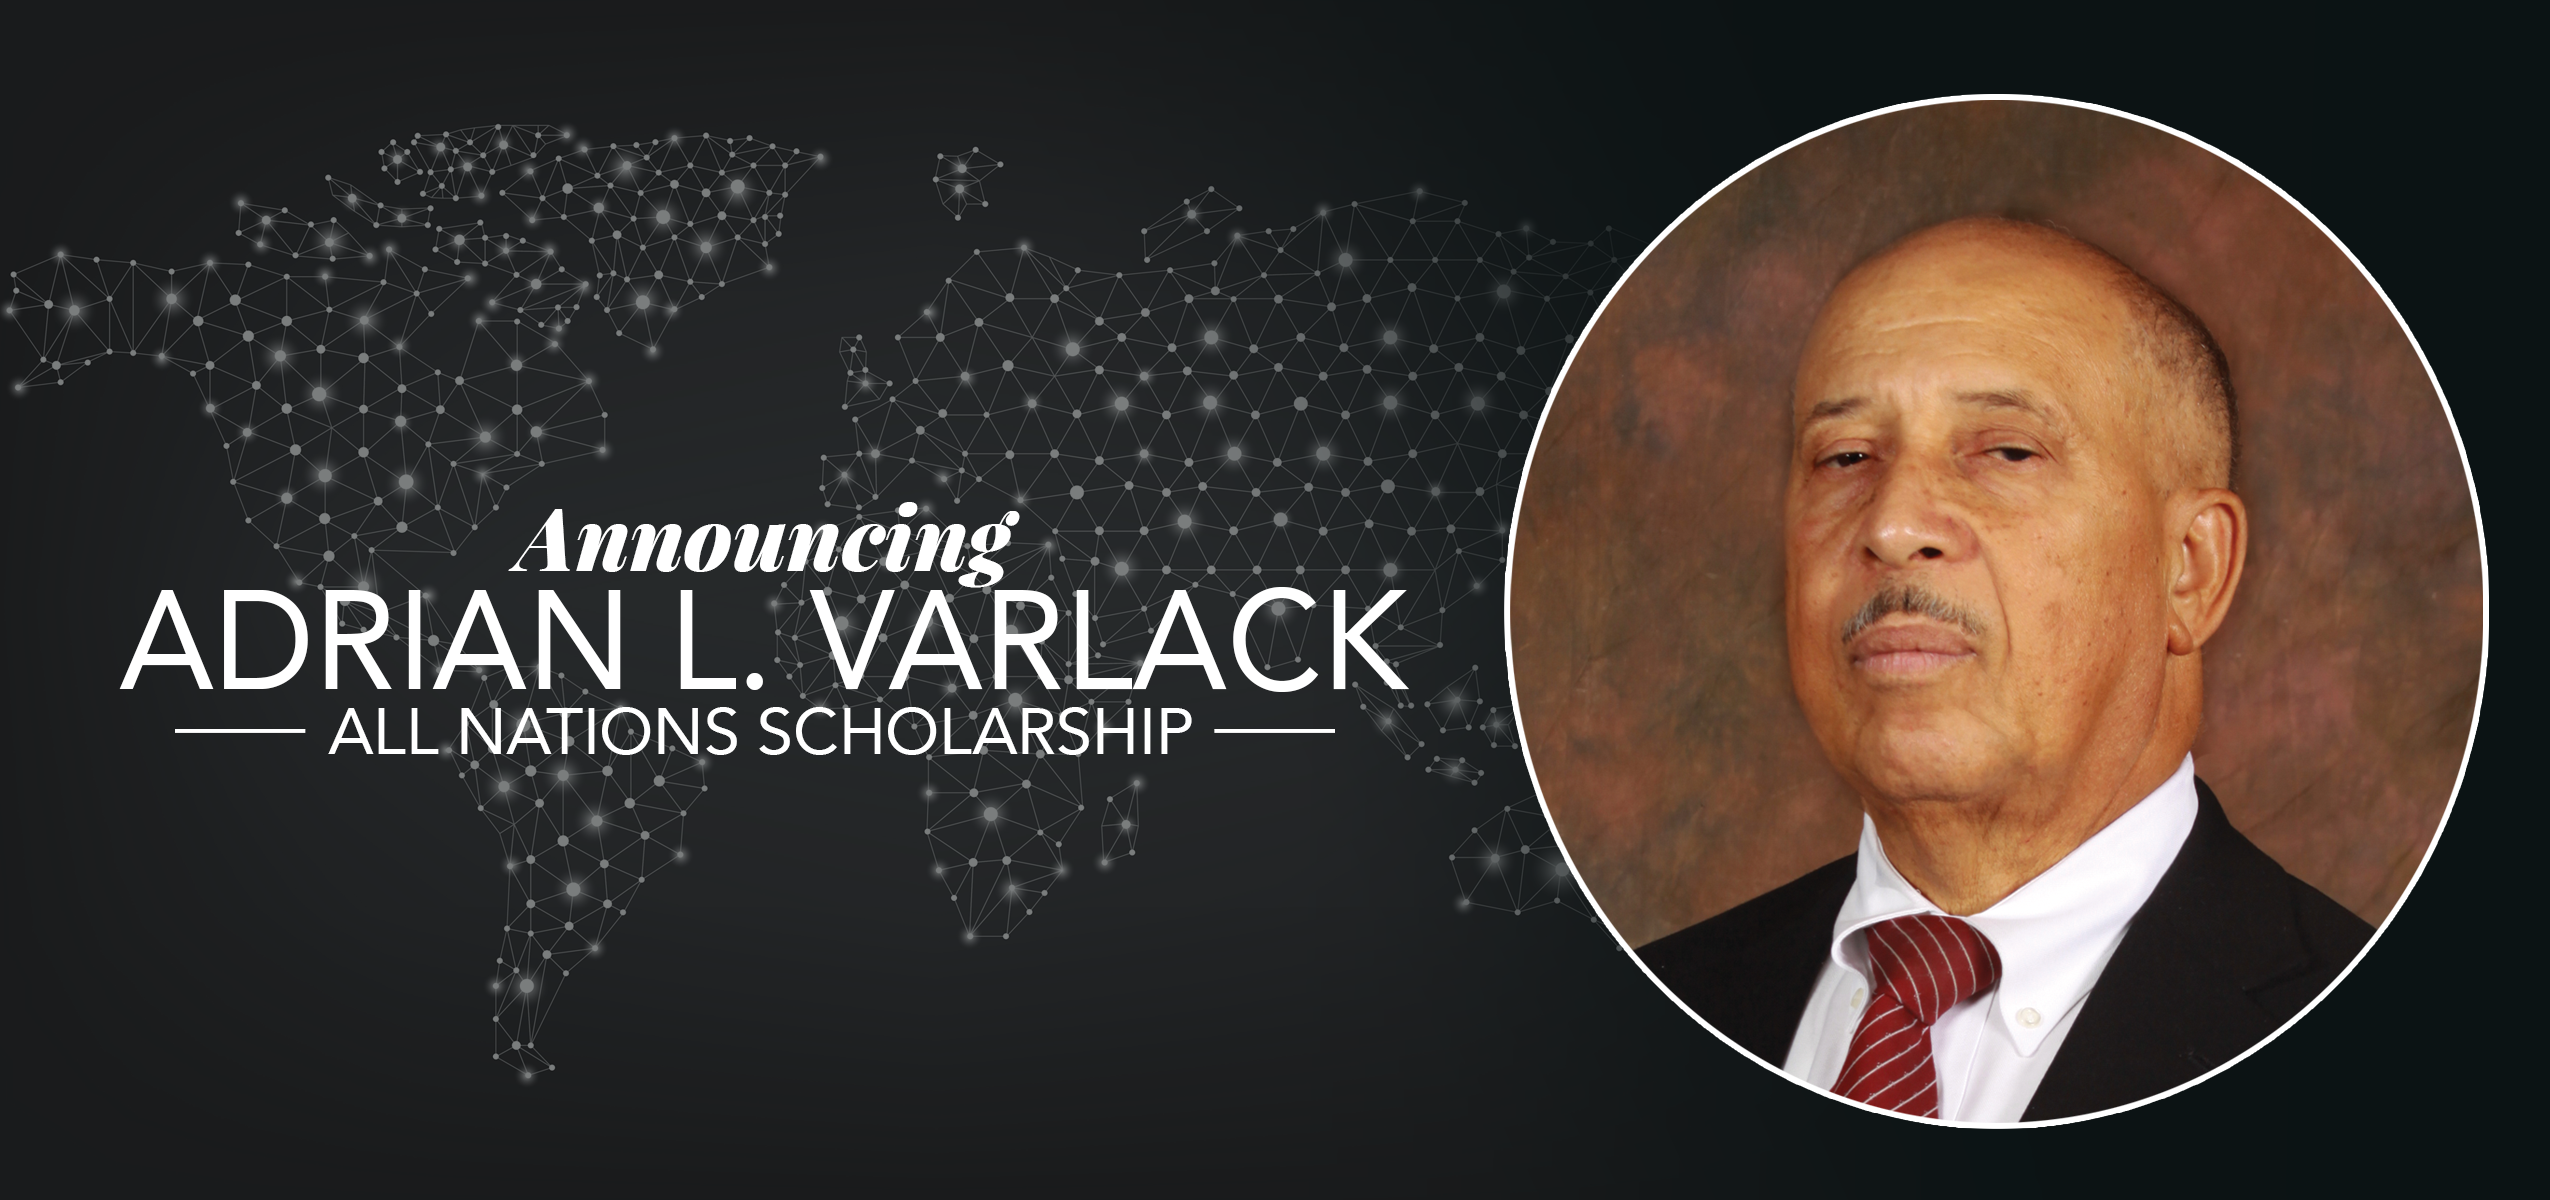 AMD Announces Adrian L. Varlack All Nations Scholarship